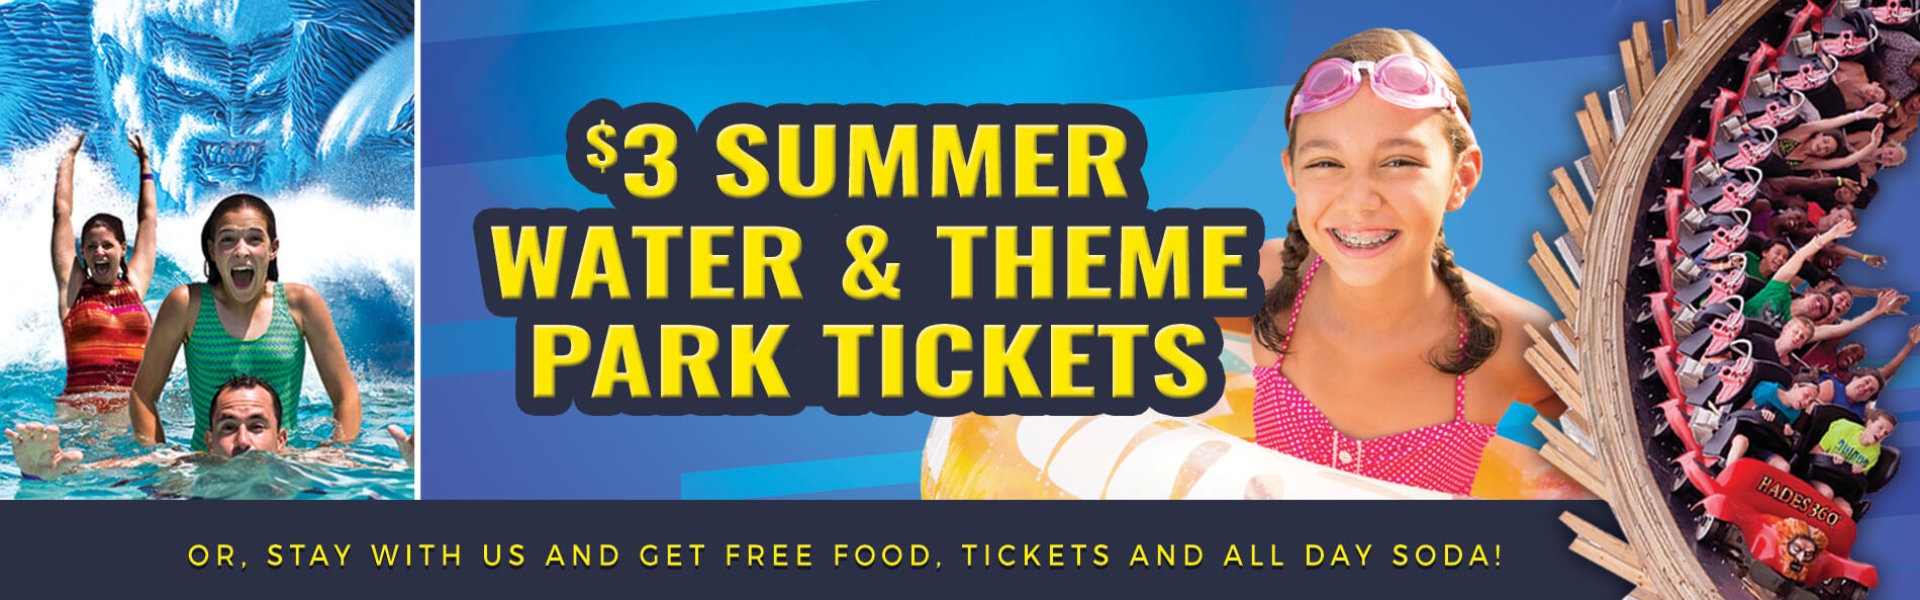 Extended Special $3 Summer Water & Theme Park Tickets